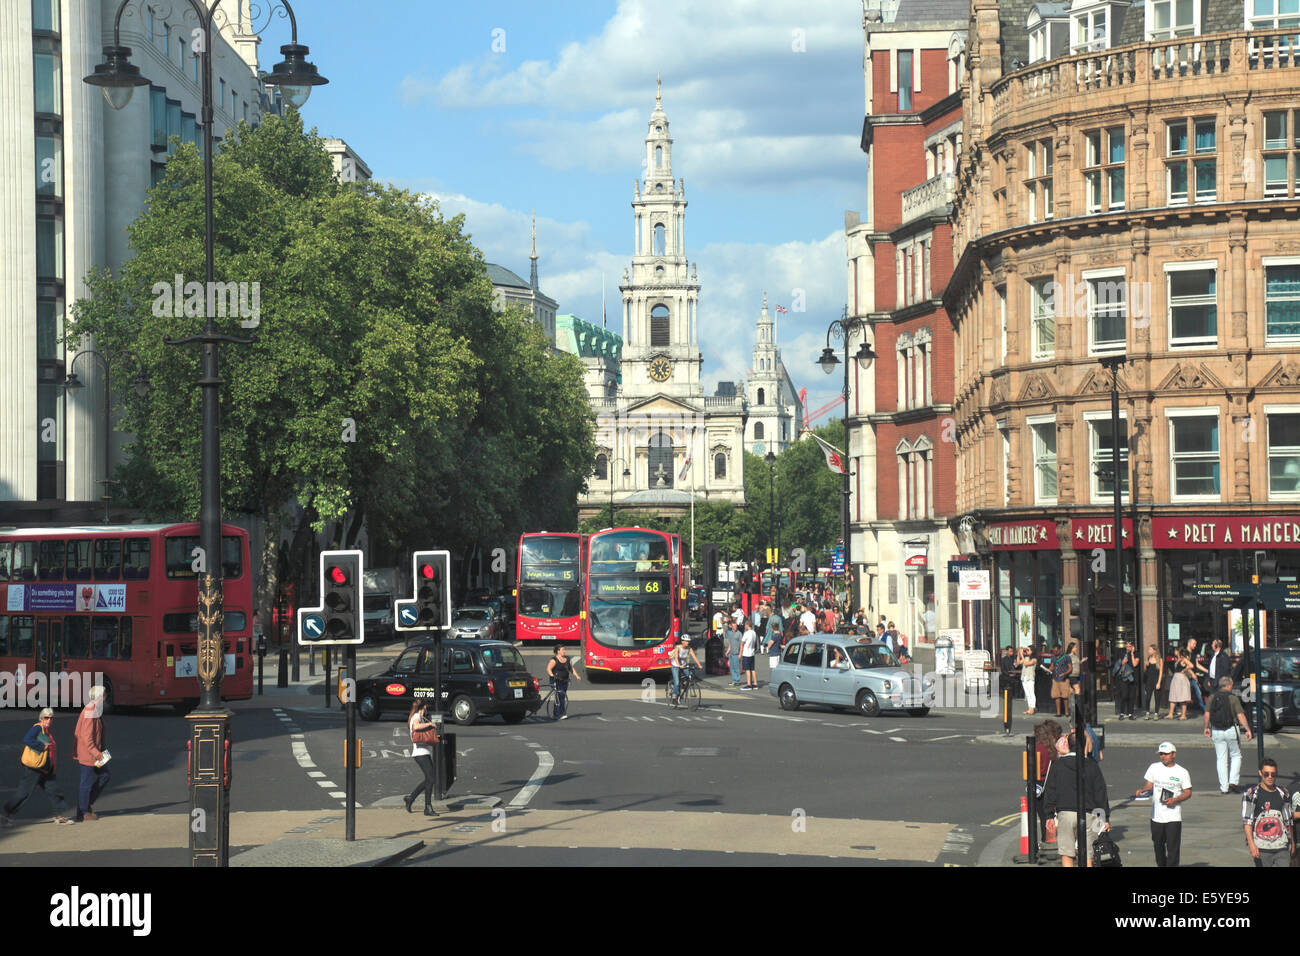 Kirche St. Mary-le-Strang Aldwych London Stockbild